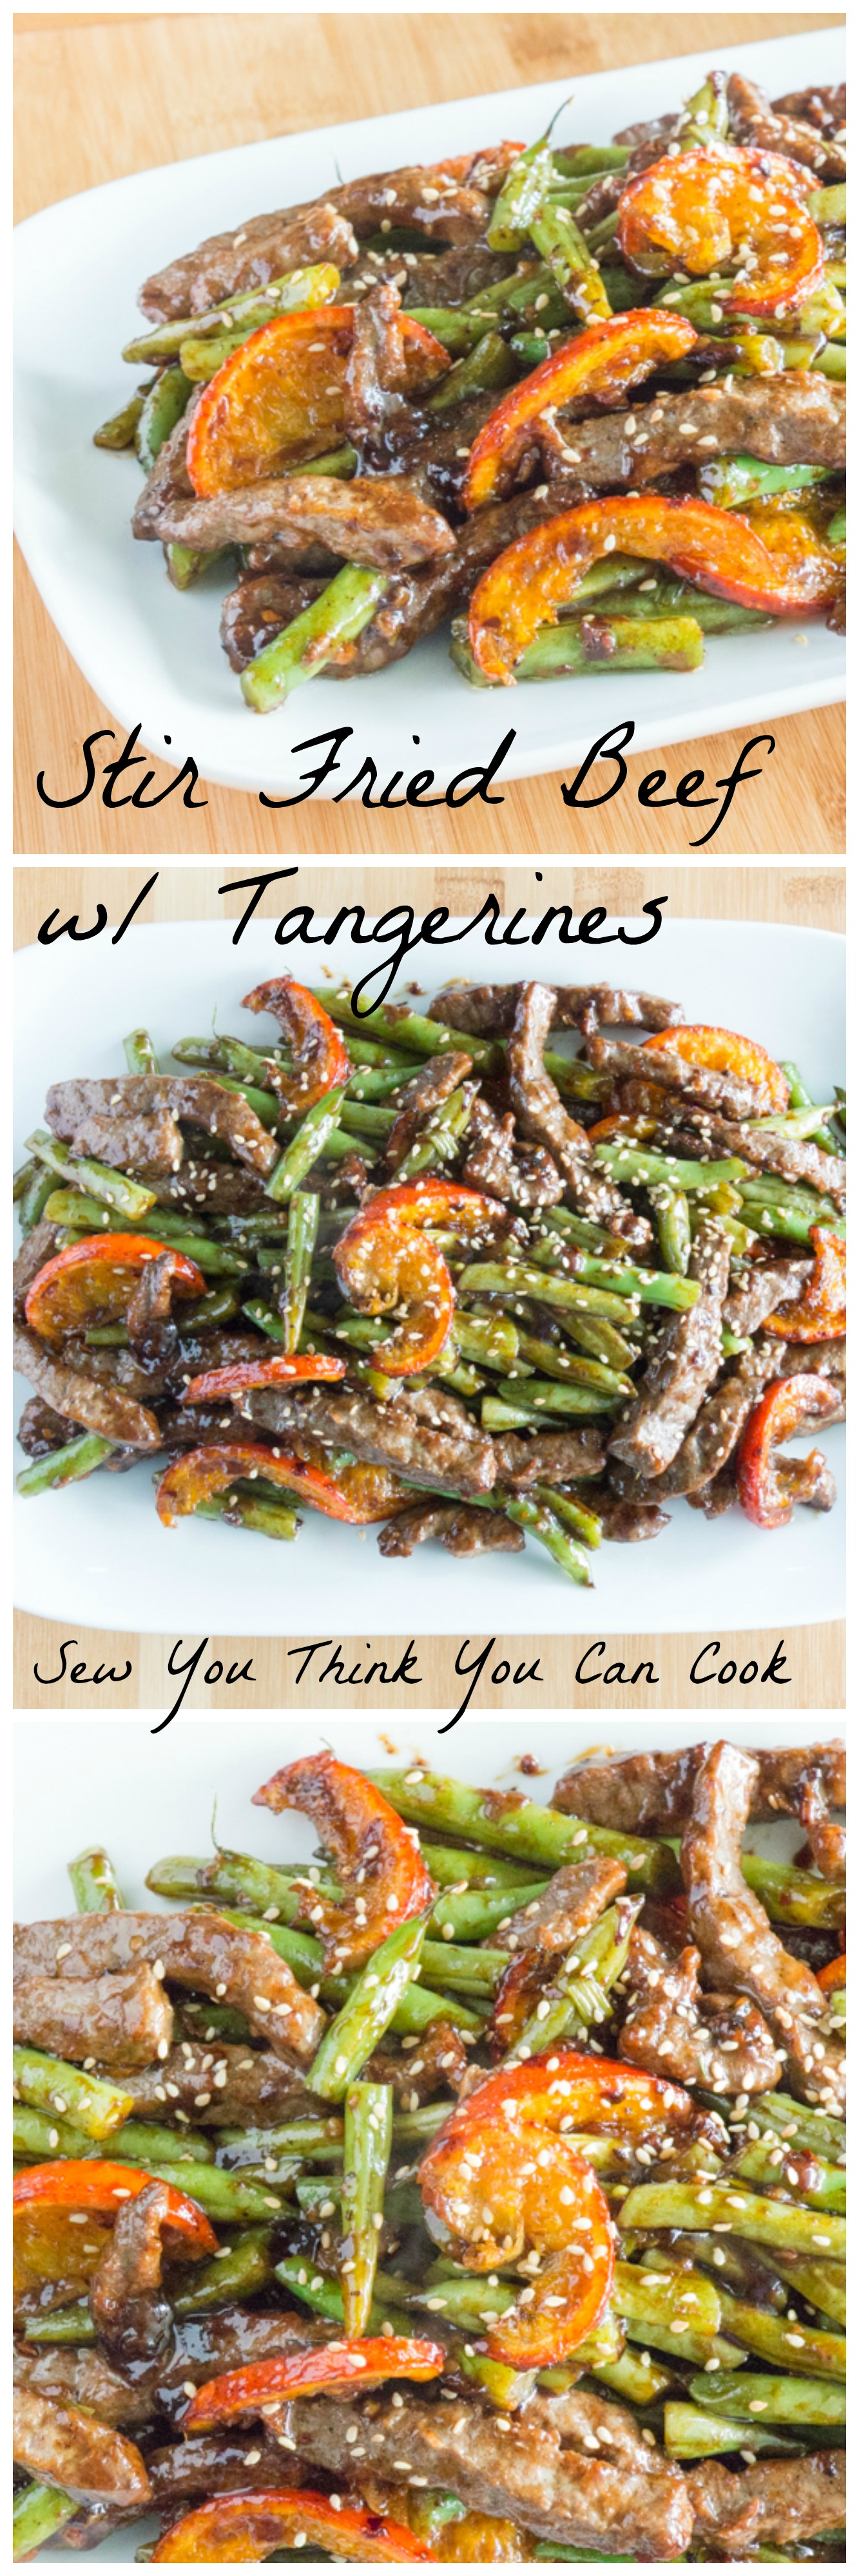 Stir fried beef with tangerines sew you think you can cook for What can you cook with hamburger meat